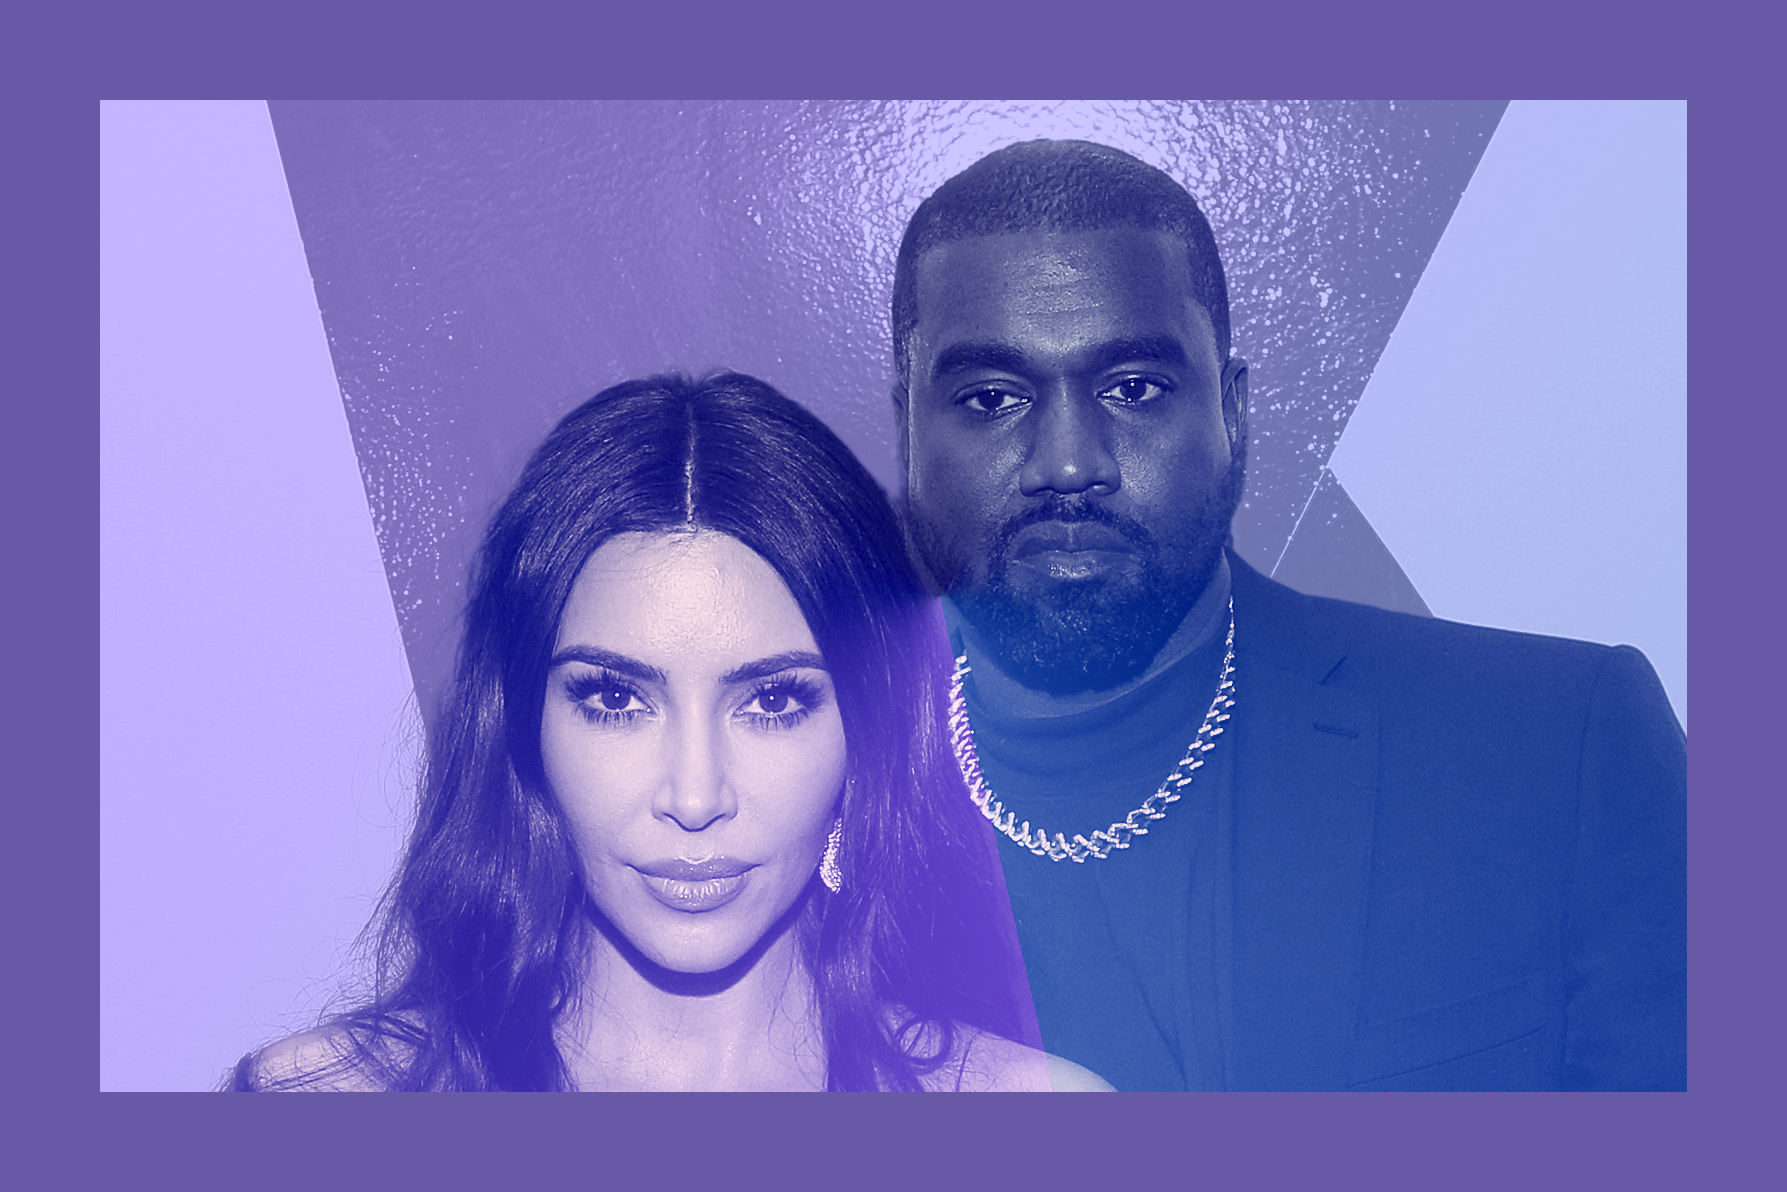 kim kardashian kanye west divorce , NEW YORK, NEW YORK - NOVEMBER 06: Kim Kardashian West and Kanye West attend the WSJ. Magazine 2019 Innovator Awards sponsored by Harry Winston and Rémy Martin at MOMA on November 06, 2019 in New York City. (Photo by Lars Niki/Getty Images for WSJ. Magazine Innovators Awards )